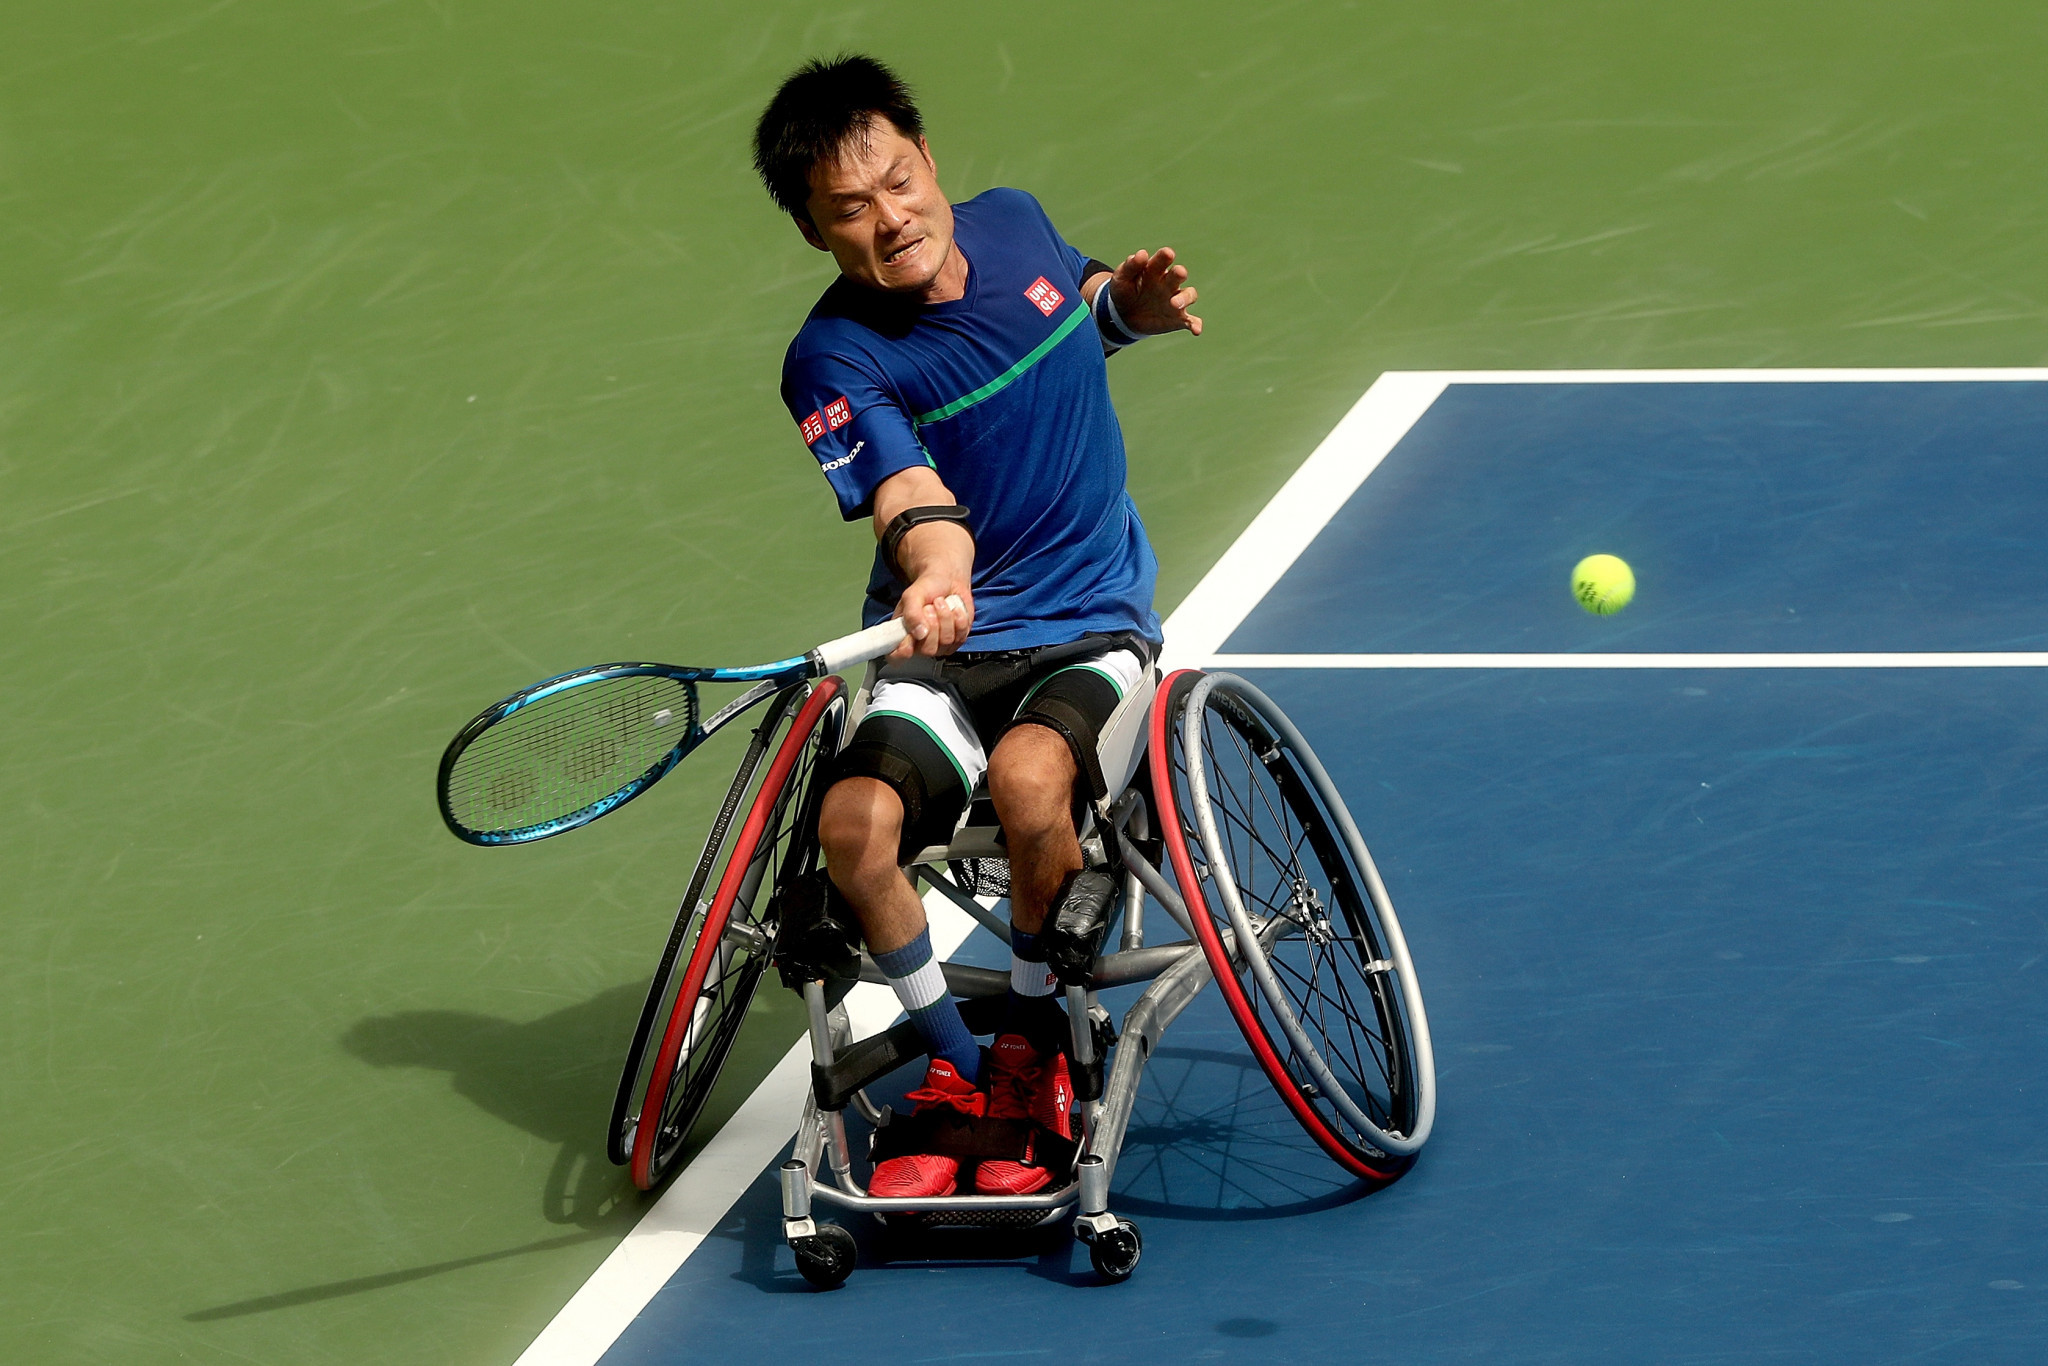 Men's singles top seed Shingo Kunieda recovered from losing the first set against Joachim Gerard to win and reach the final ©Getty Images